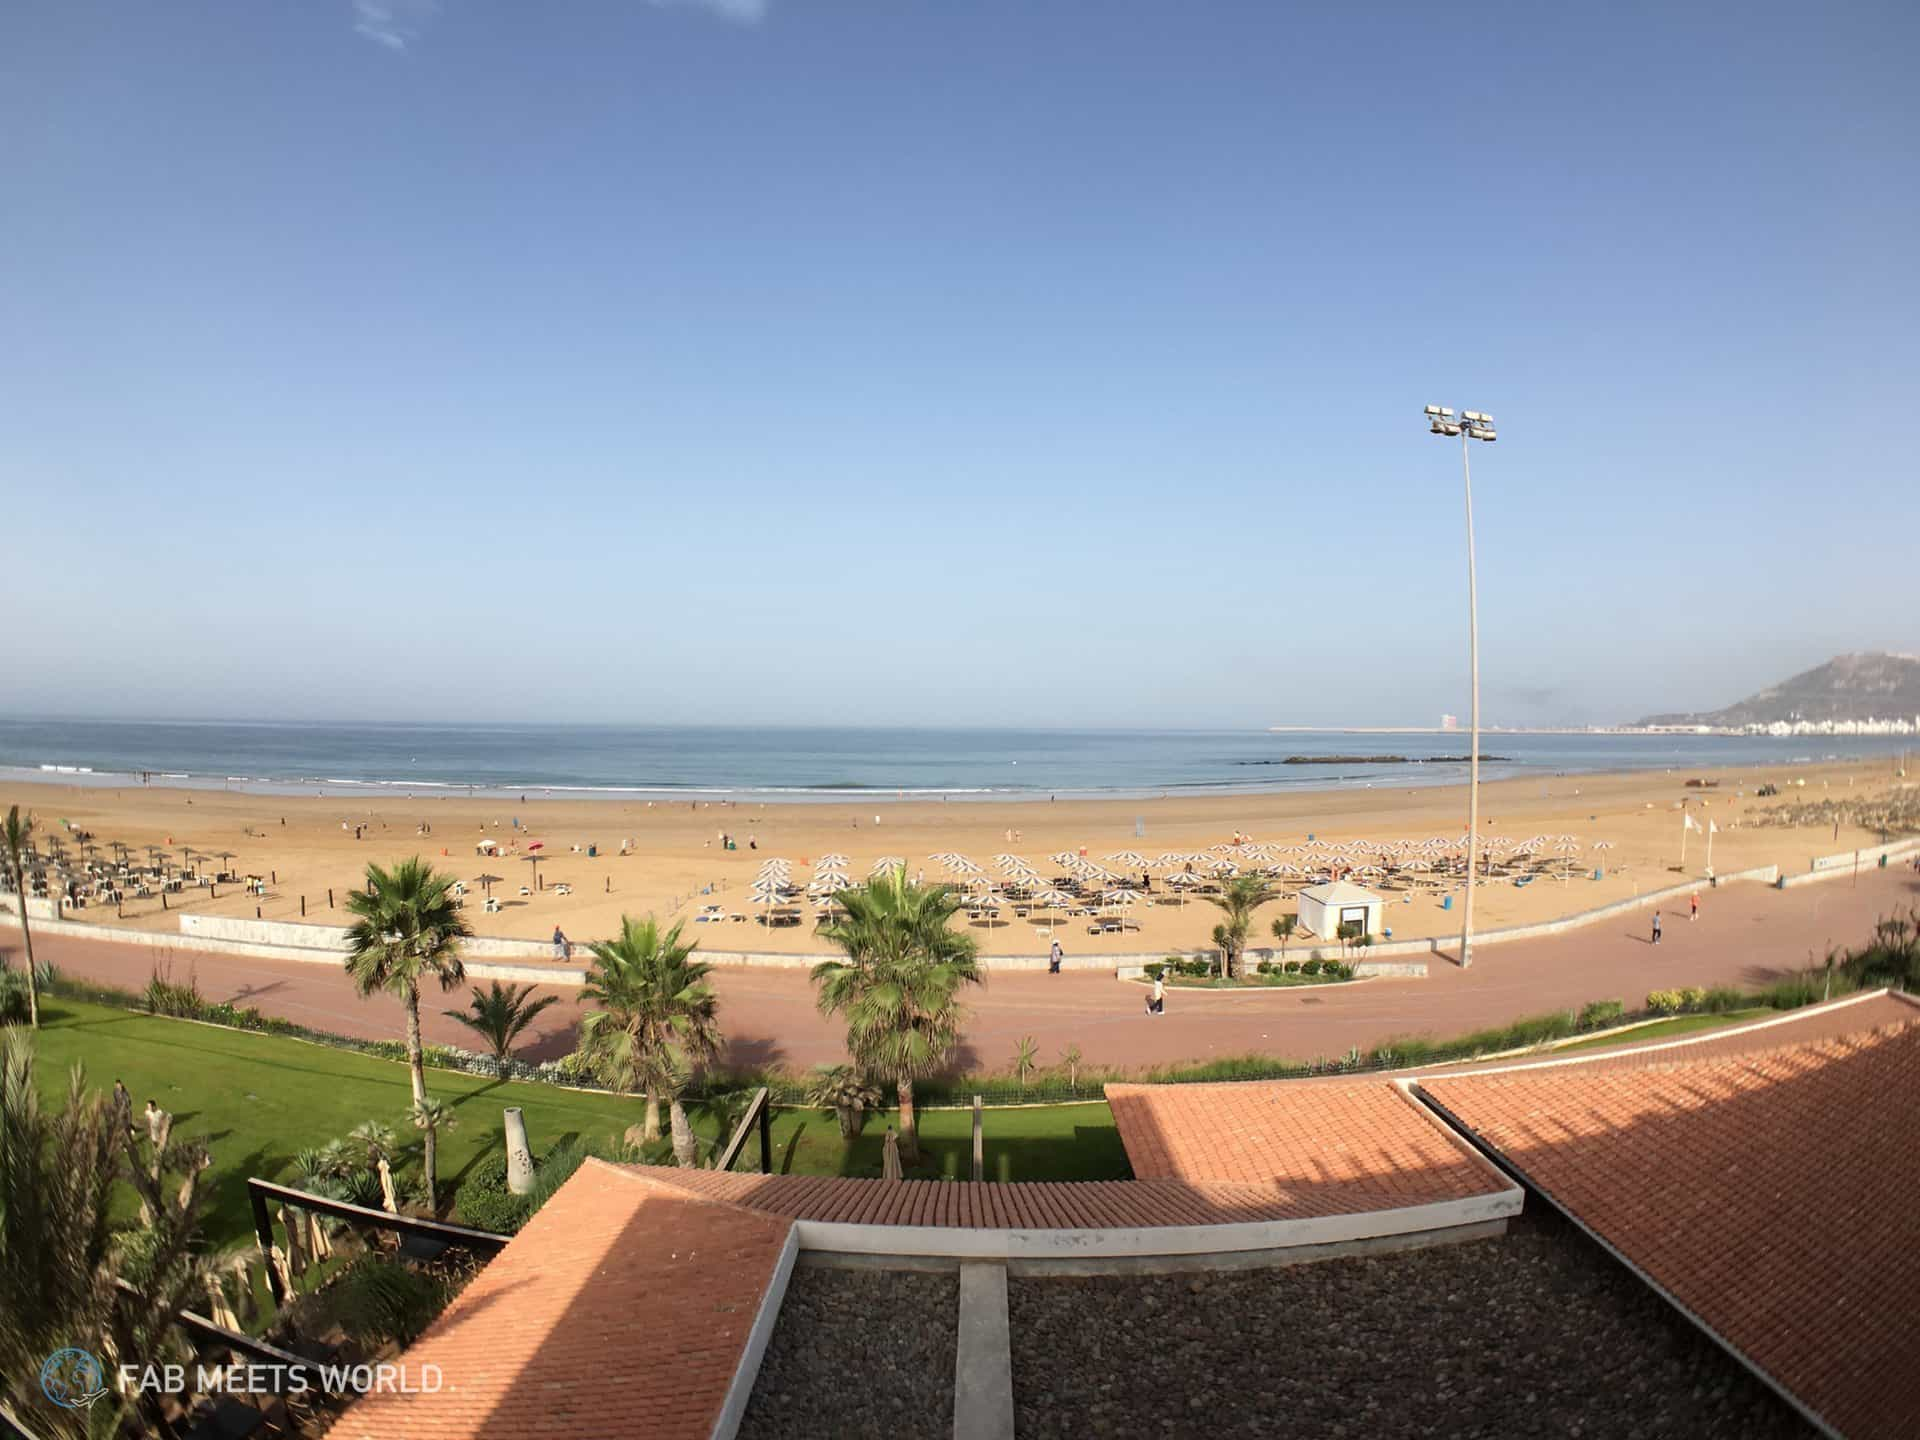 What they don't tell you about the weather in Agadir, Morocco